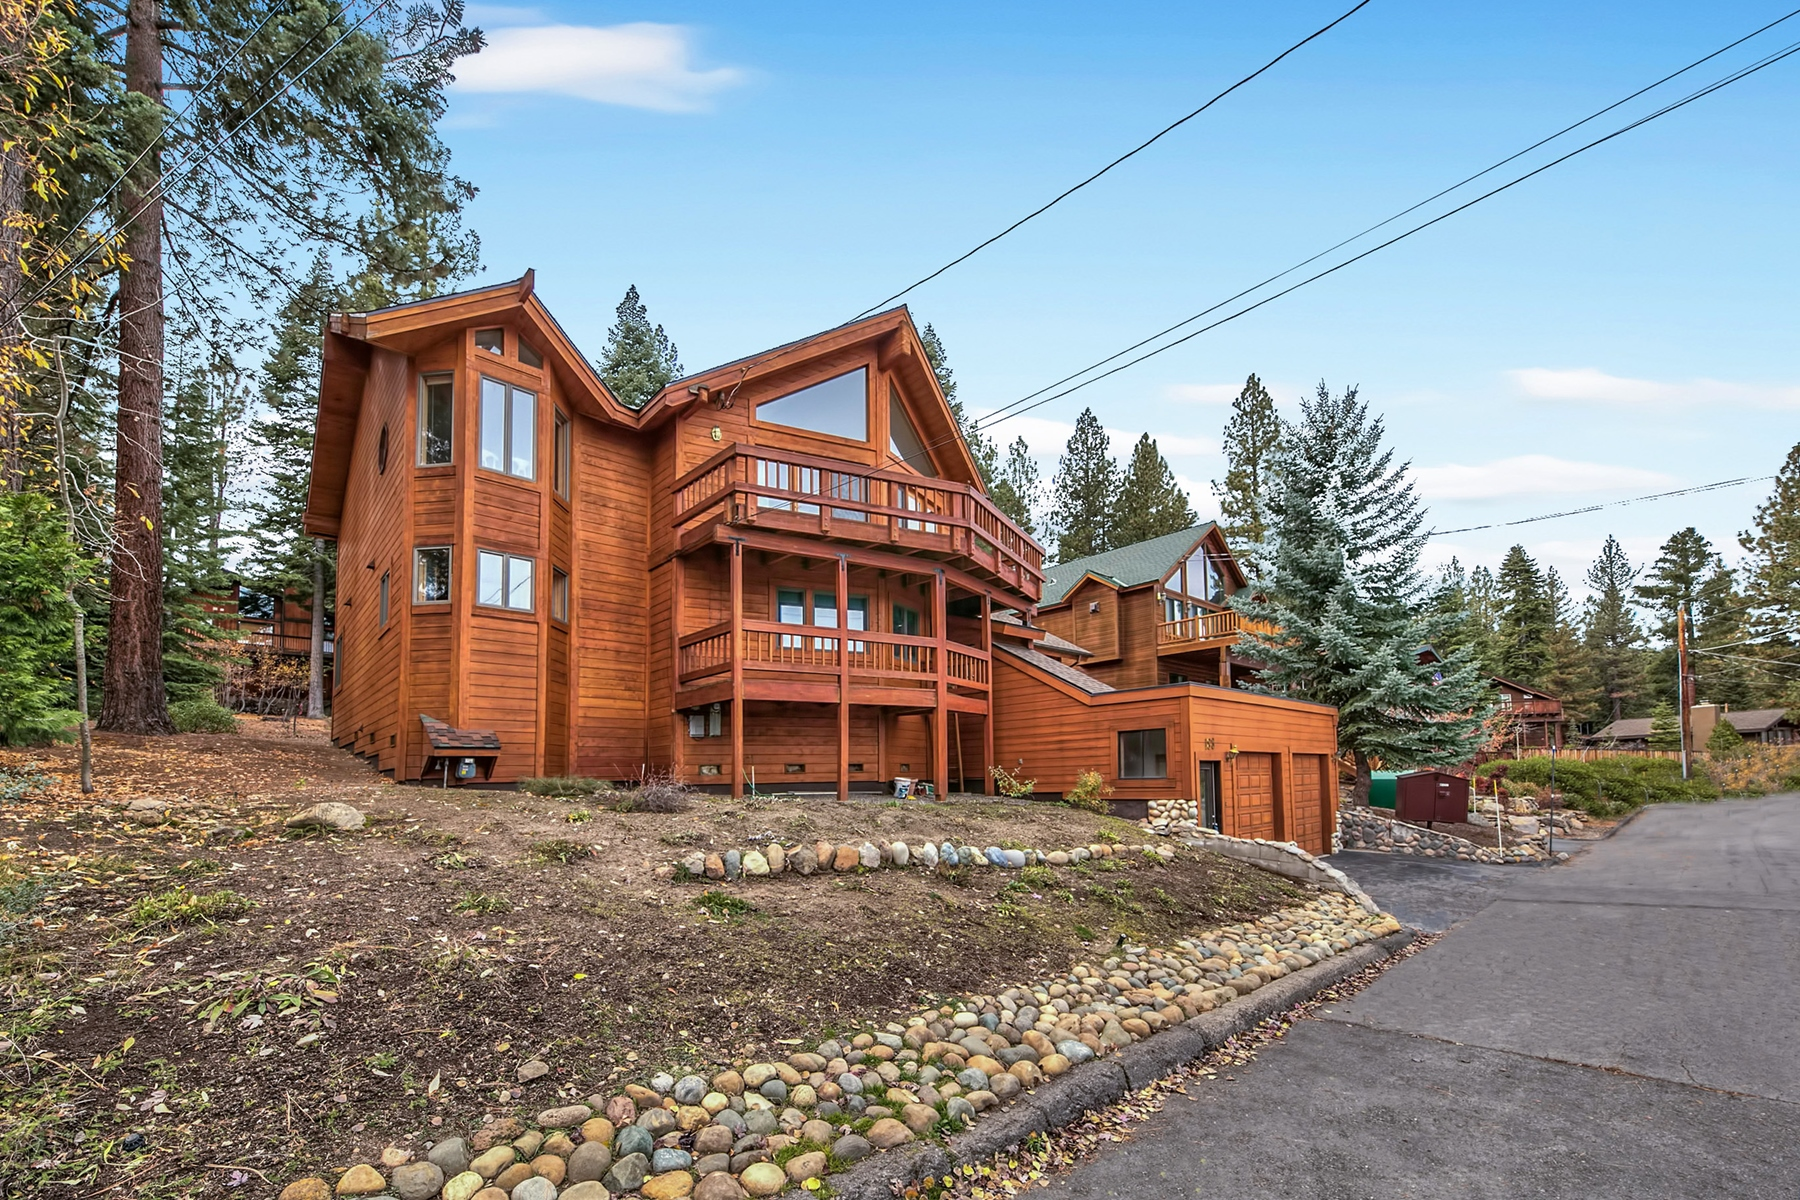 Single Family Home for Sale at 183 Edgewood Drive, Tahoe City, CA 96145 183 Edgewood Drive Tahoe City, California 96145 United States